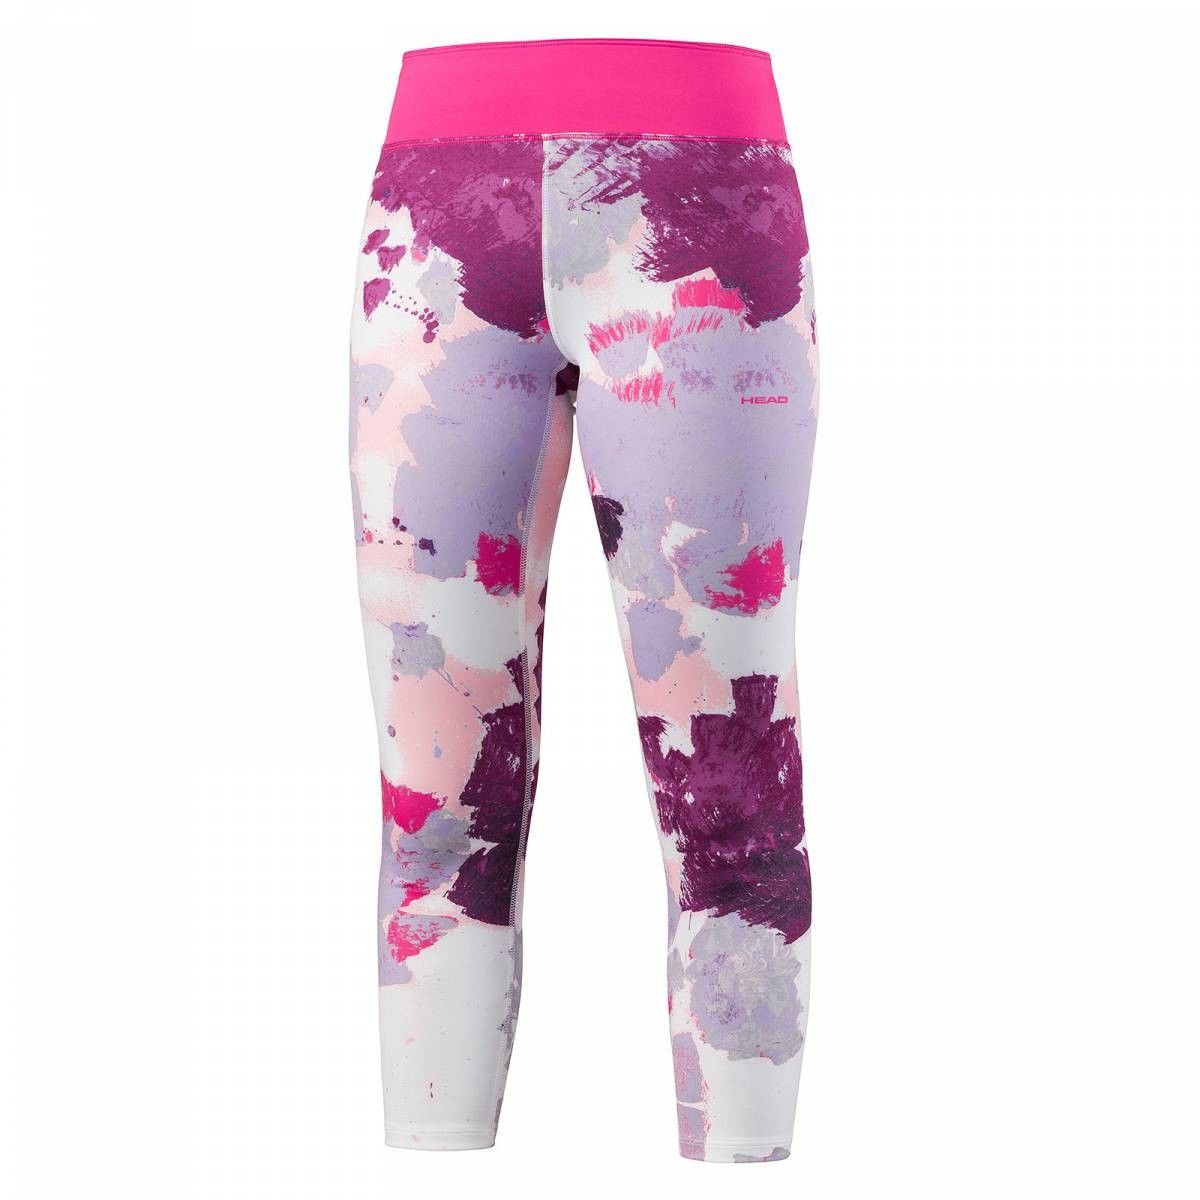 Head Vision Graphic 7/8 Pant W - magenta